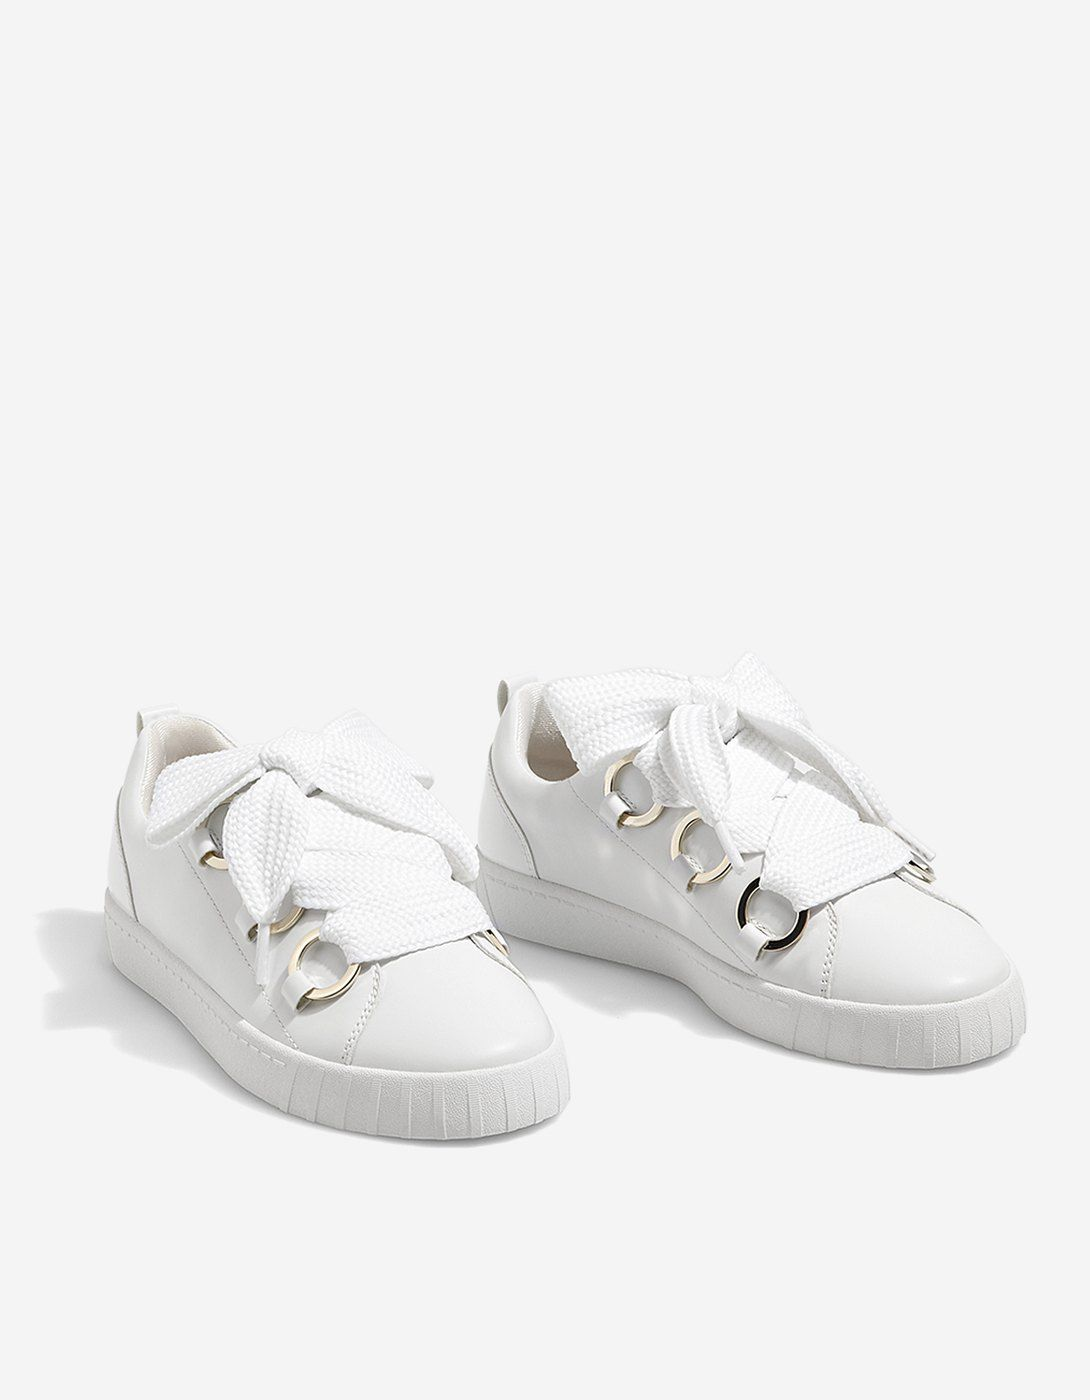 premium selection c74ba 0525c White lace-up sneakers - All   Stradivarius Romania